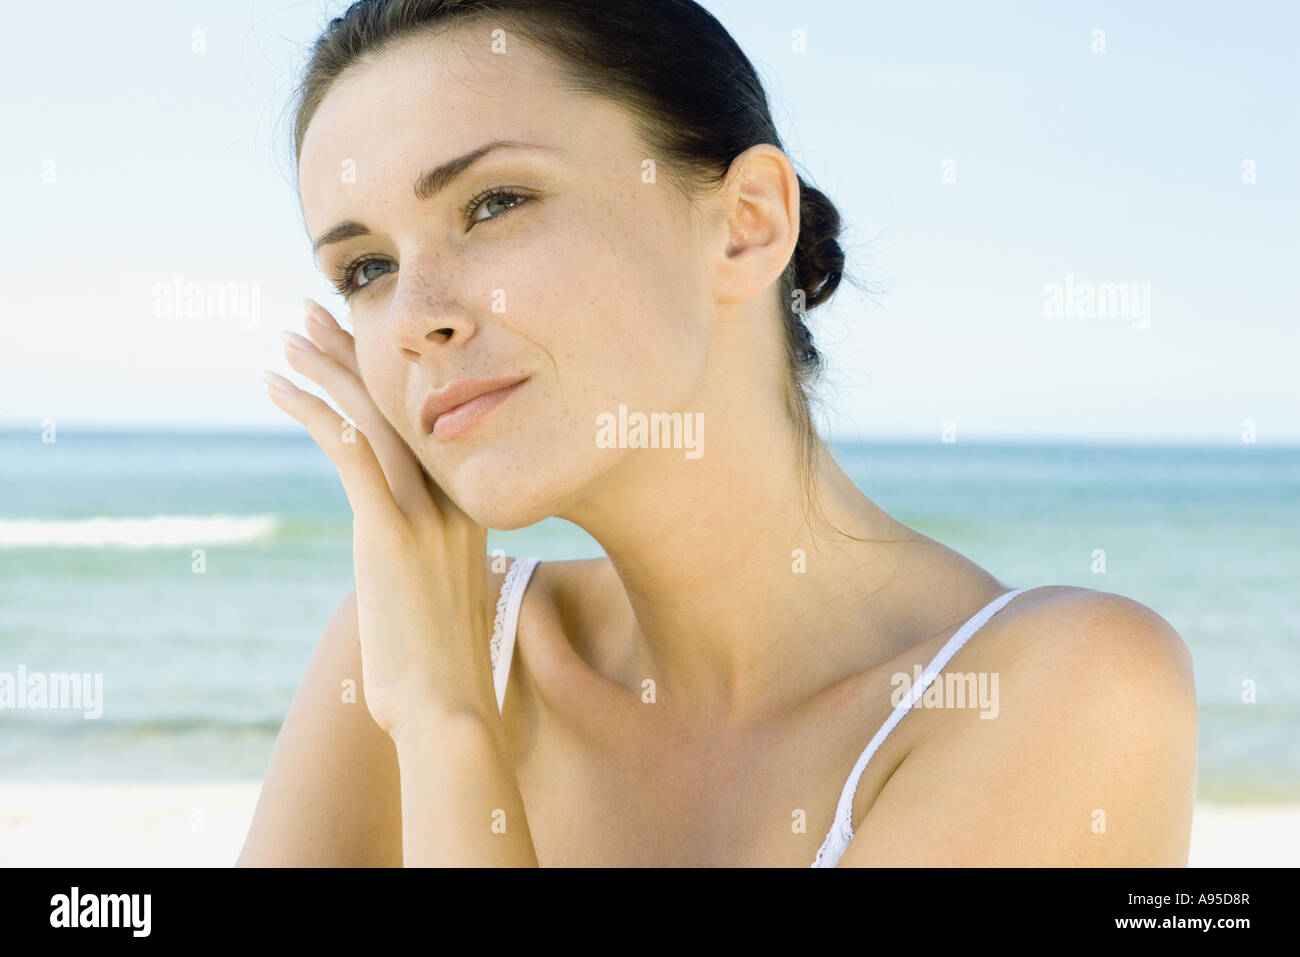 Woman touching face with back of hand, sea in background, head and shoulders - Stock Image